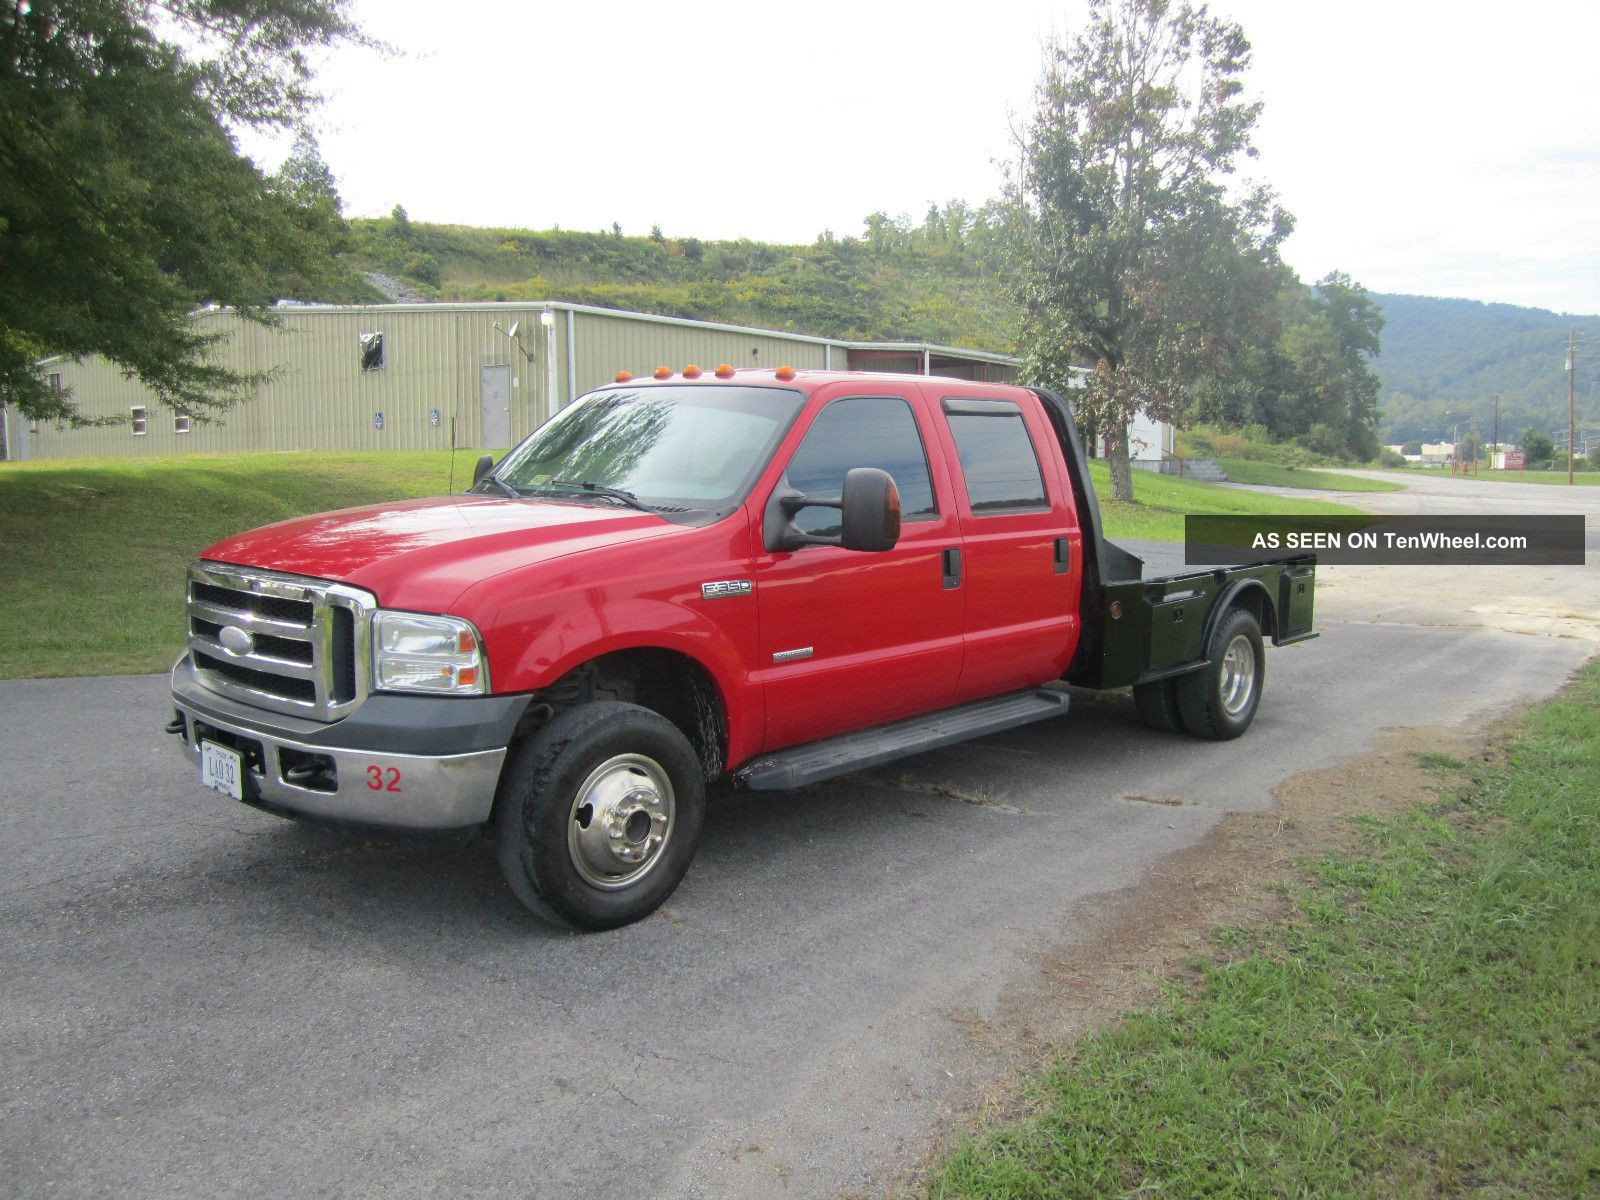 2006 ford f 350 xlt 4x4 drw flatbed crew cab powerstroke diesel. Black Bedroom Furniture Sets. Home Design Ideas